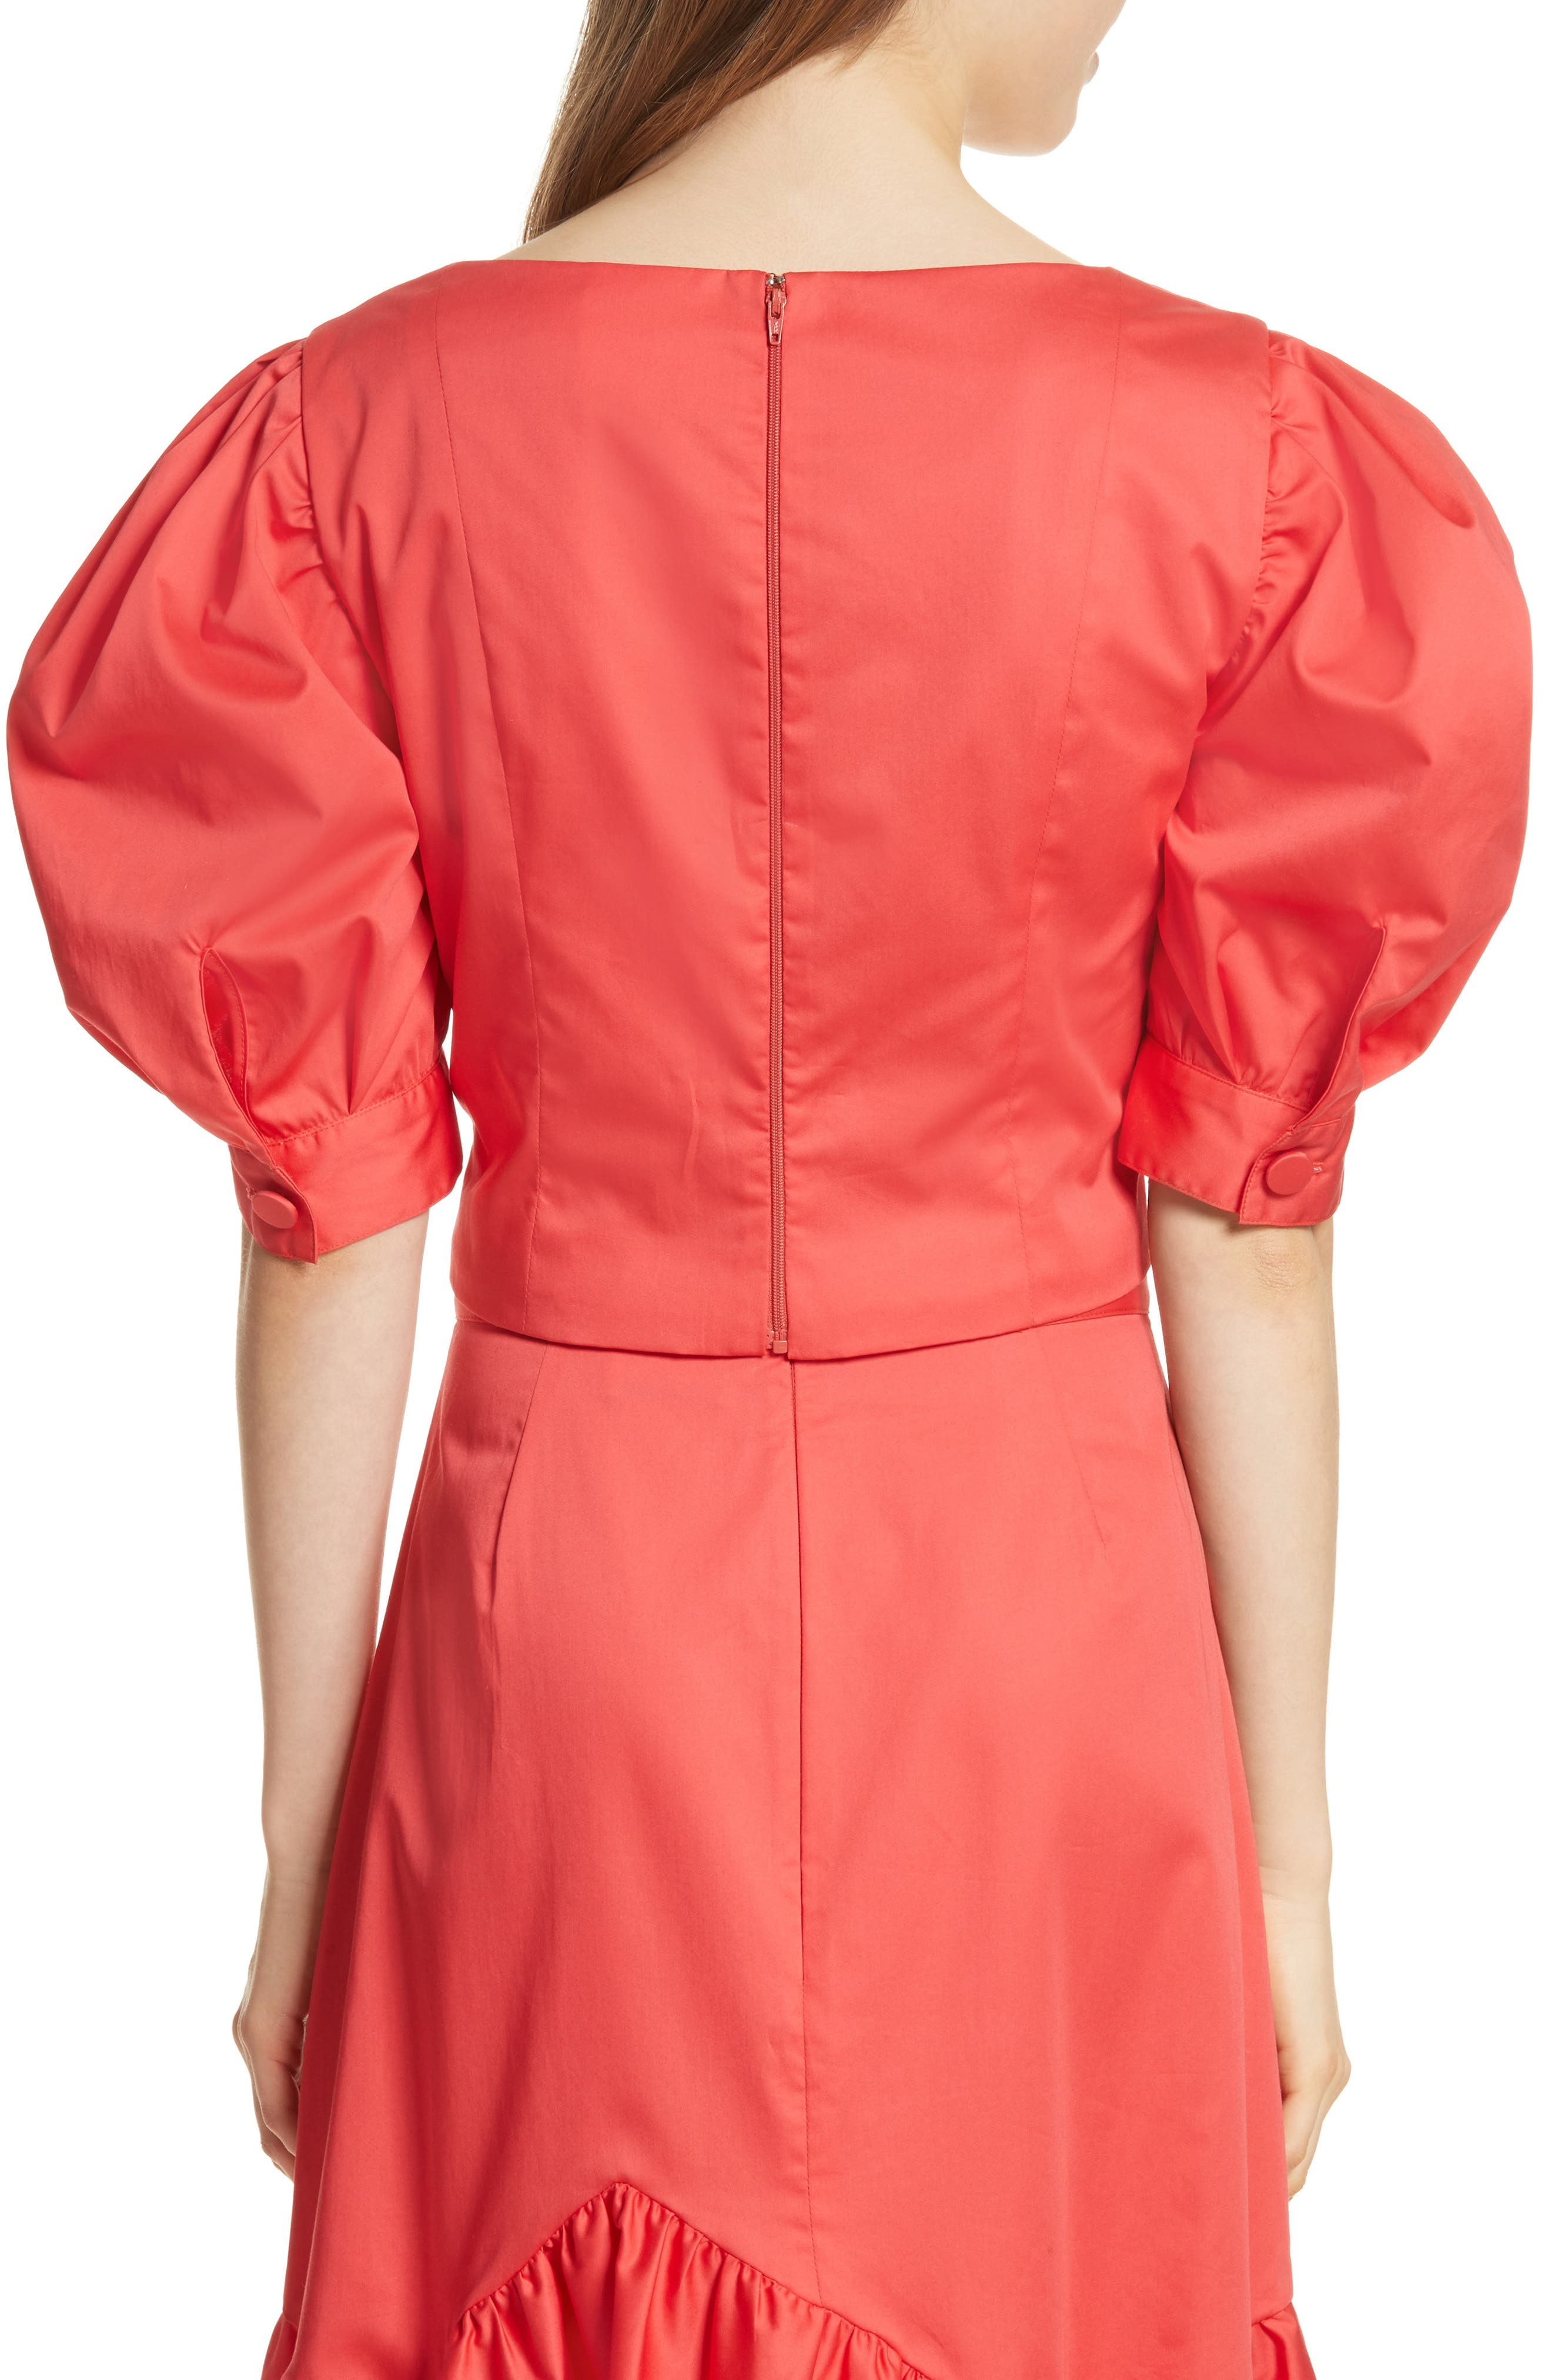 Prose & Poetry Claudia Puff Sleeve Top,                             Alternate thumbnail 2, color,                             621